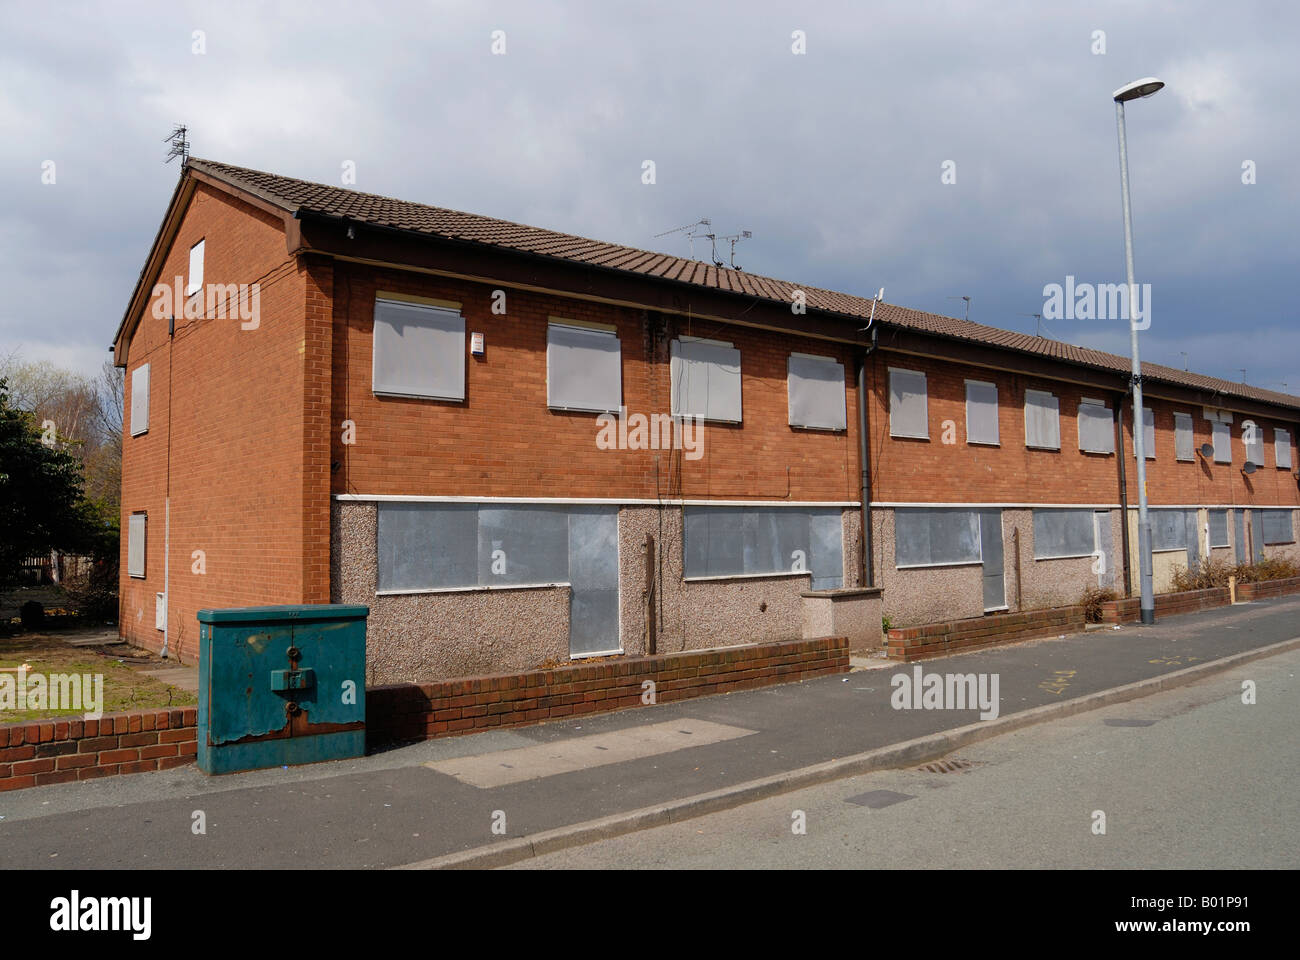 Houses in the Beswick district of East Manchester, refered to as Eastlands and close to the city centre, - Stock Image